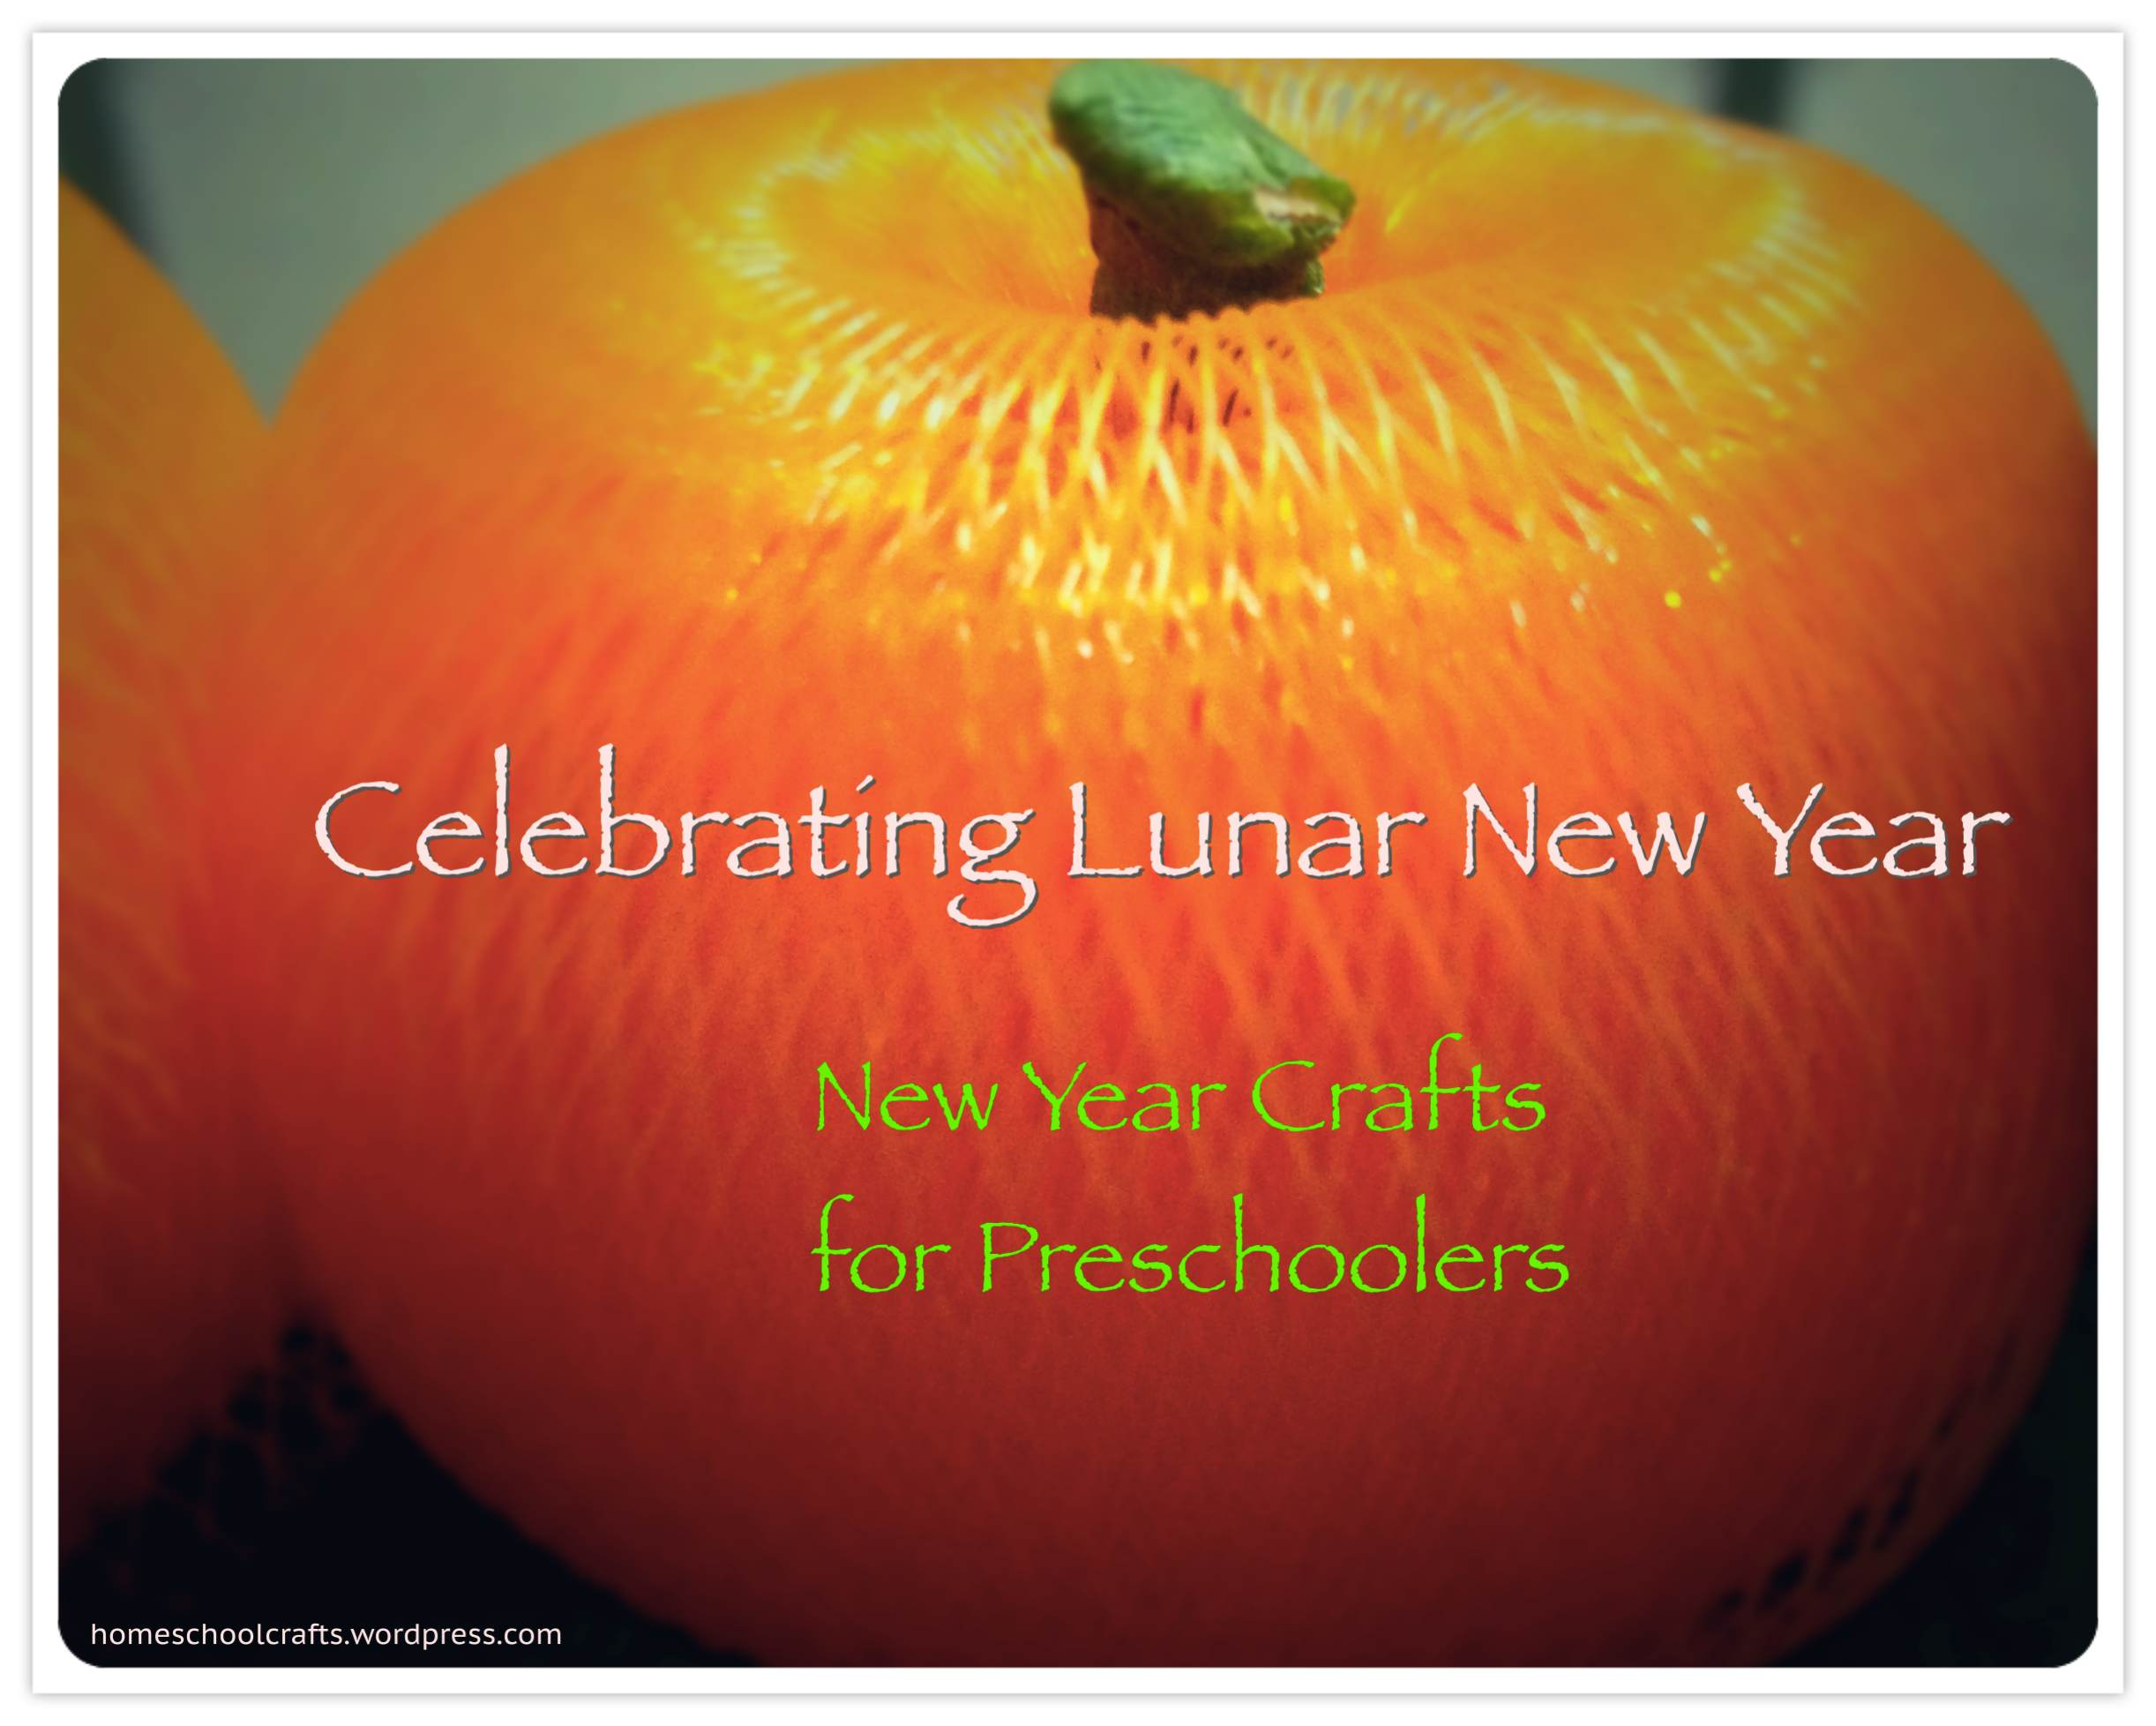 Lunar new year crafts - Celebrating Lunar New Year Crafts And Books For Preschoolers Chinese_new_year_preschool_homeschool_crafts